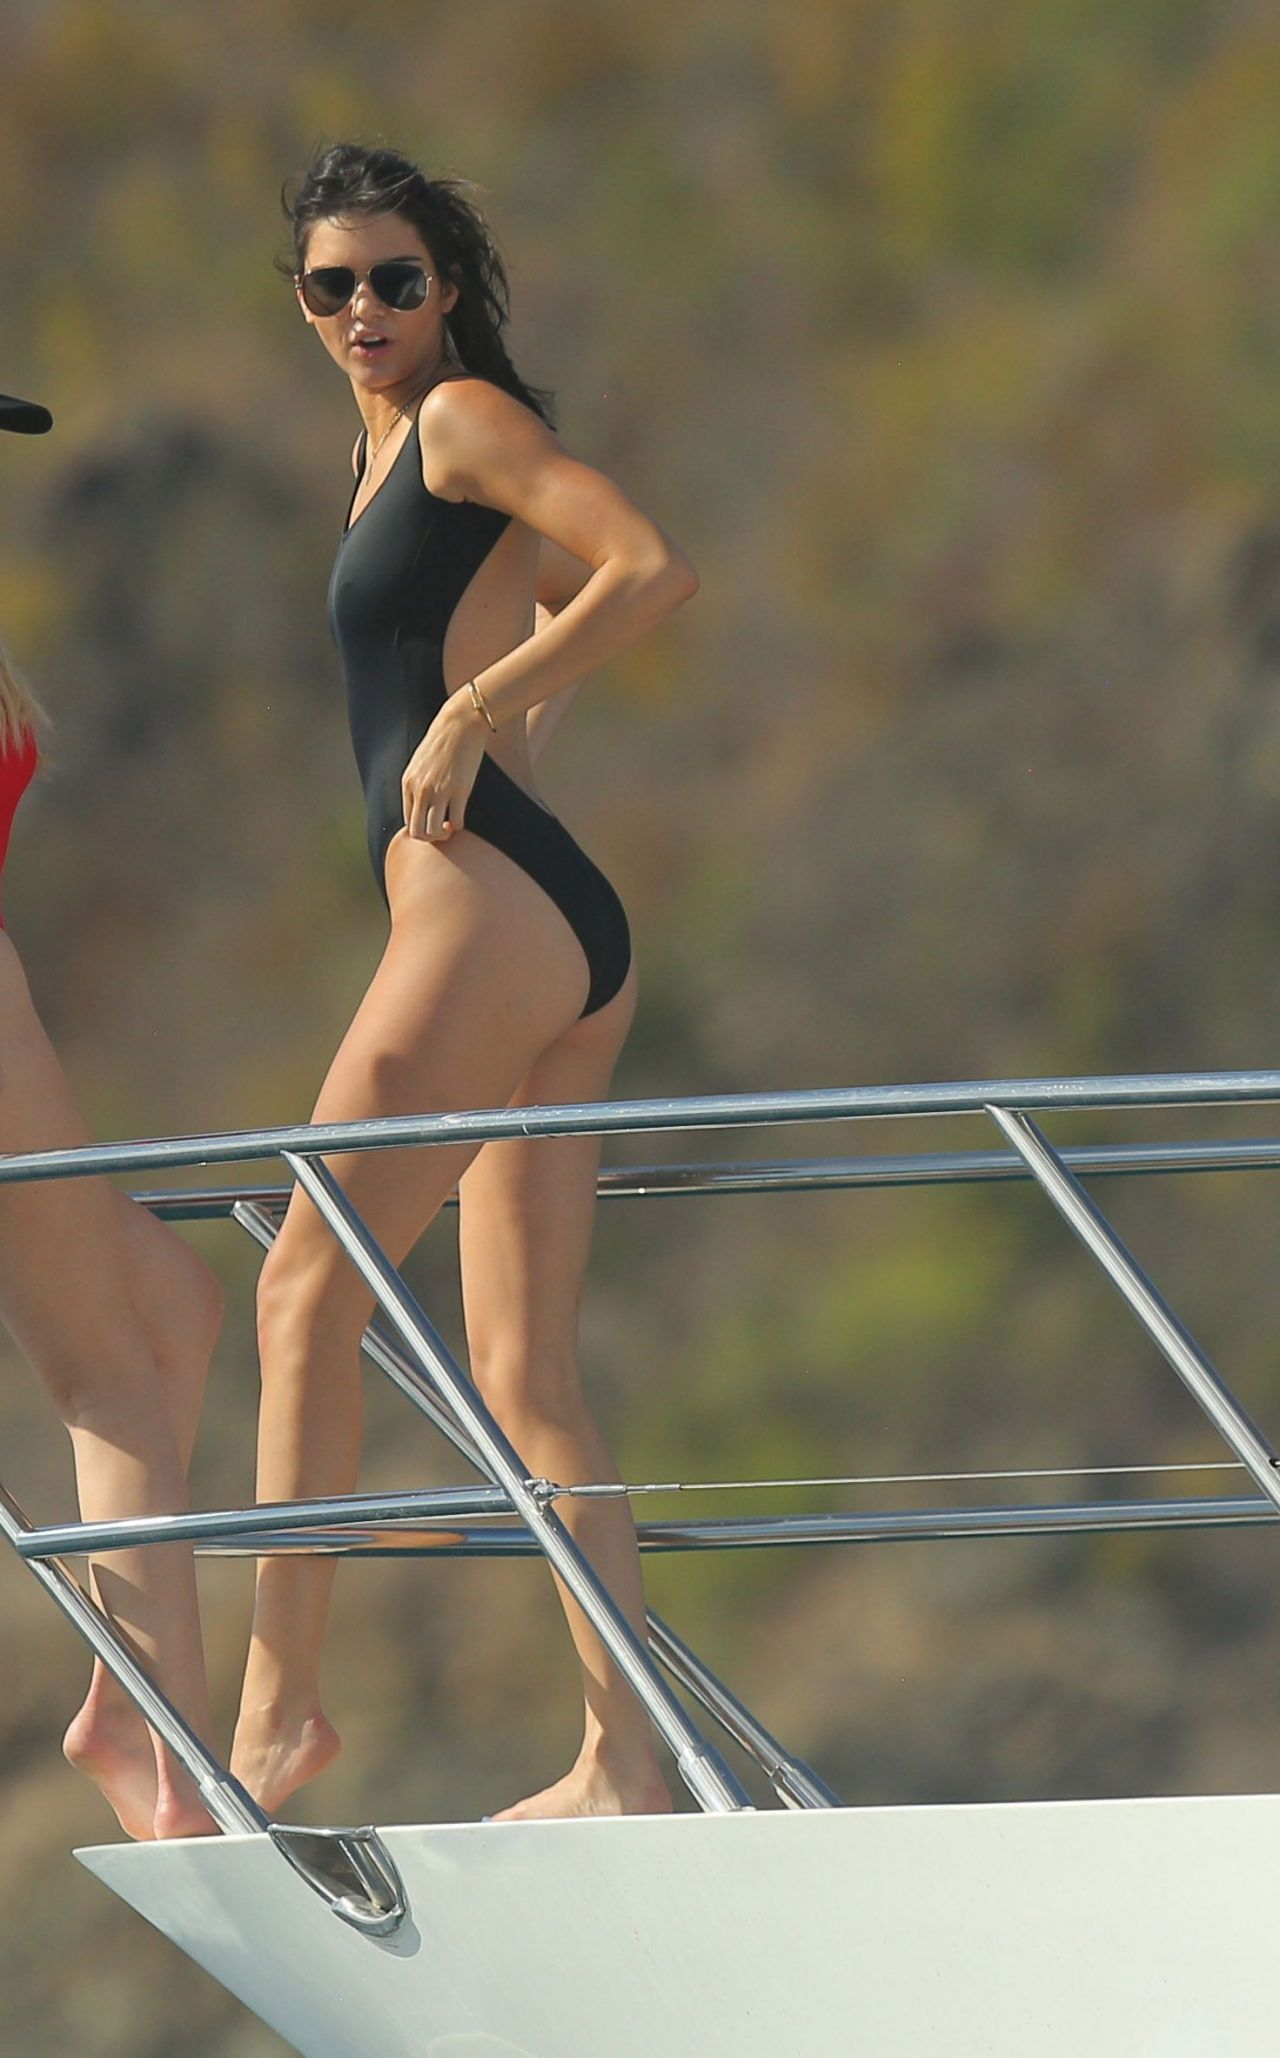 Kendall Jenner in Black Swimsuit - St. Barts, August 2015